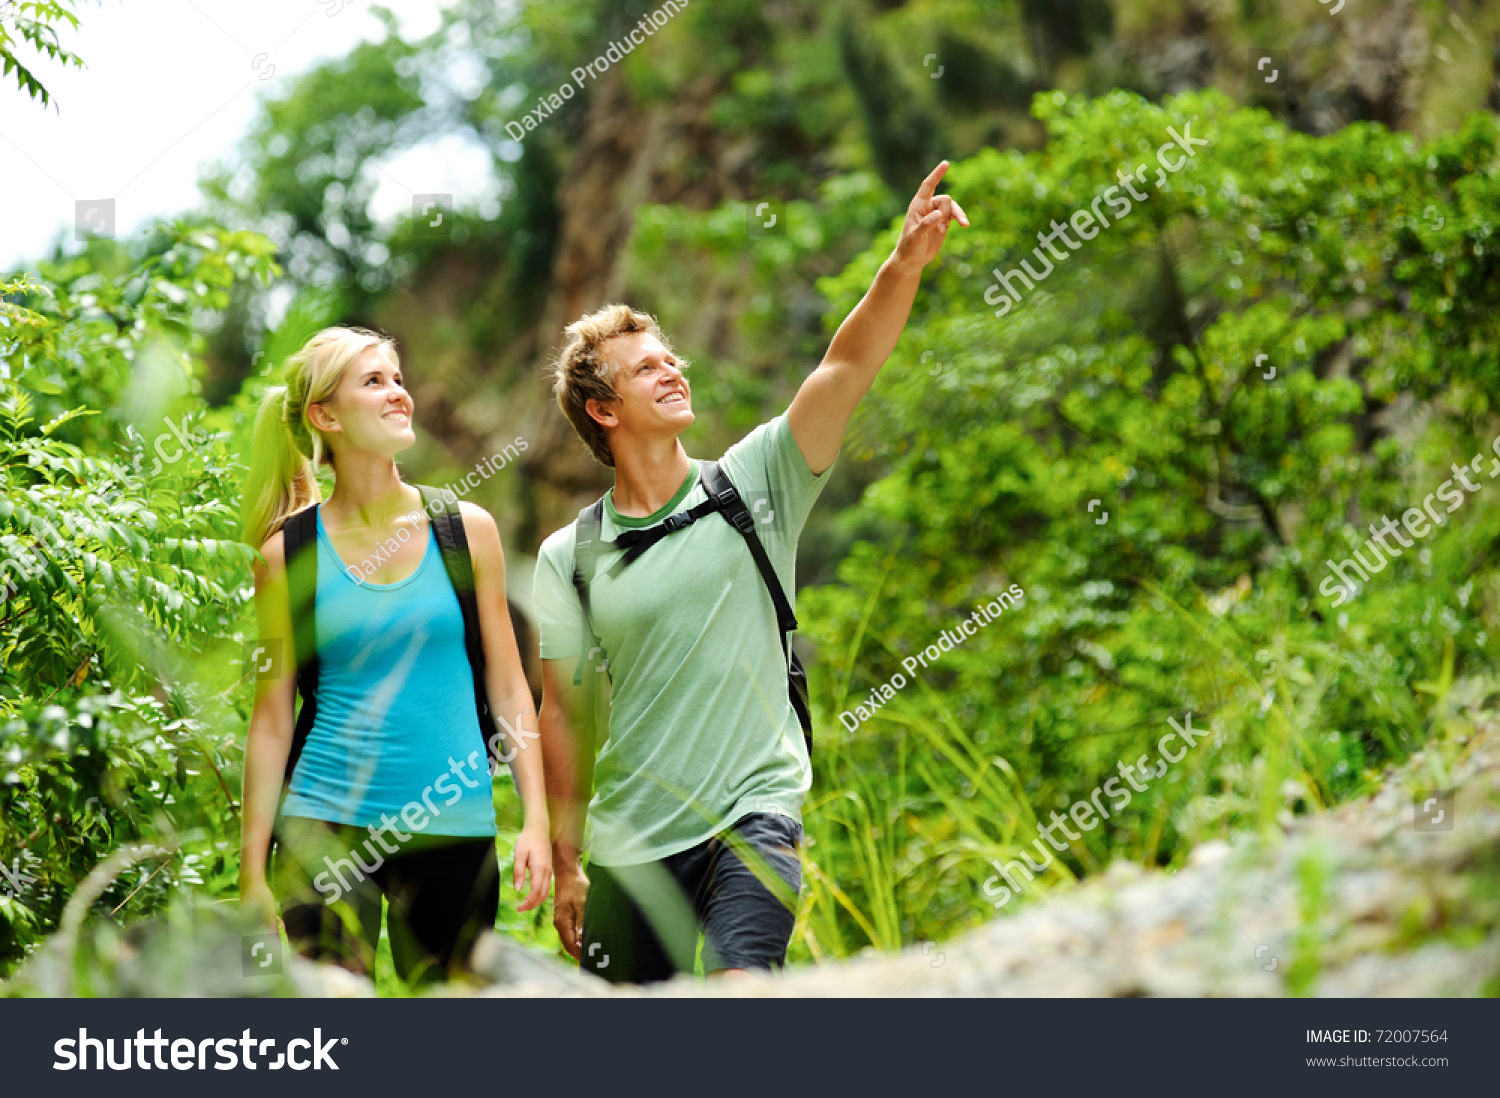 Cute Couple Have Fun Together Outdoors On A Hike Stock